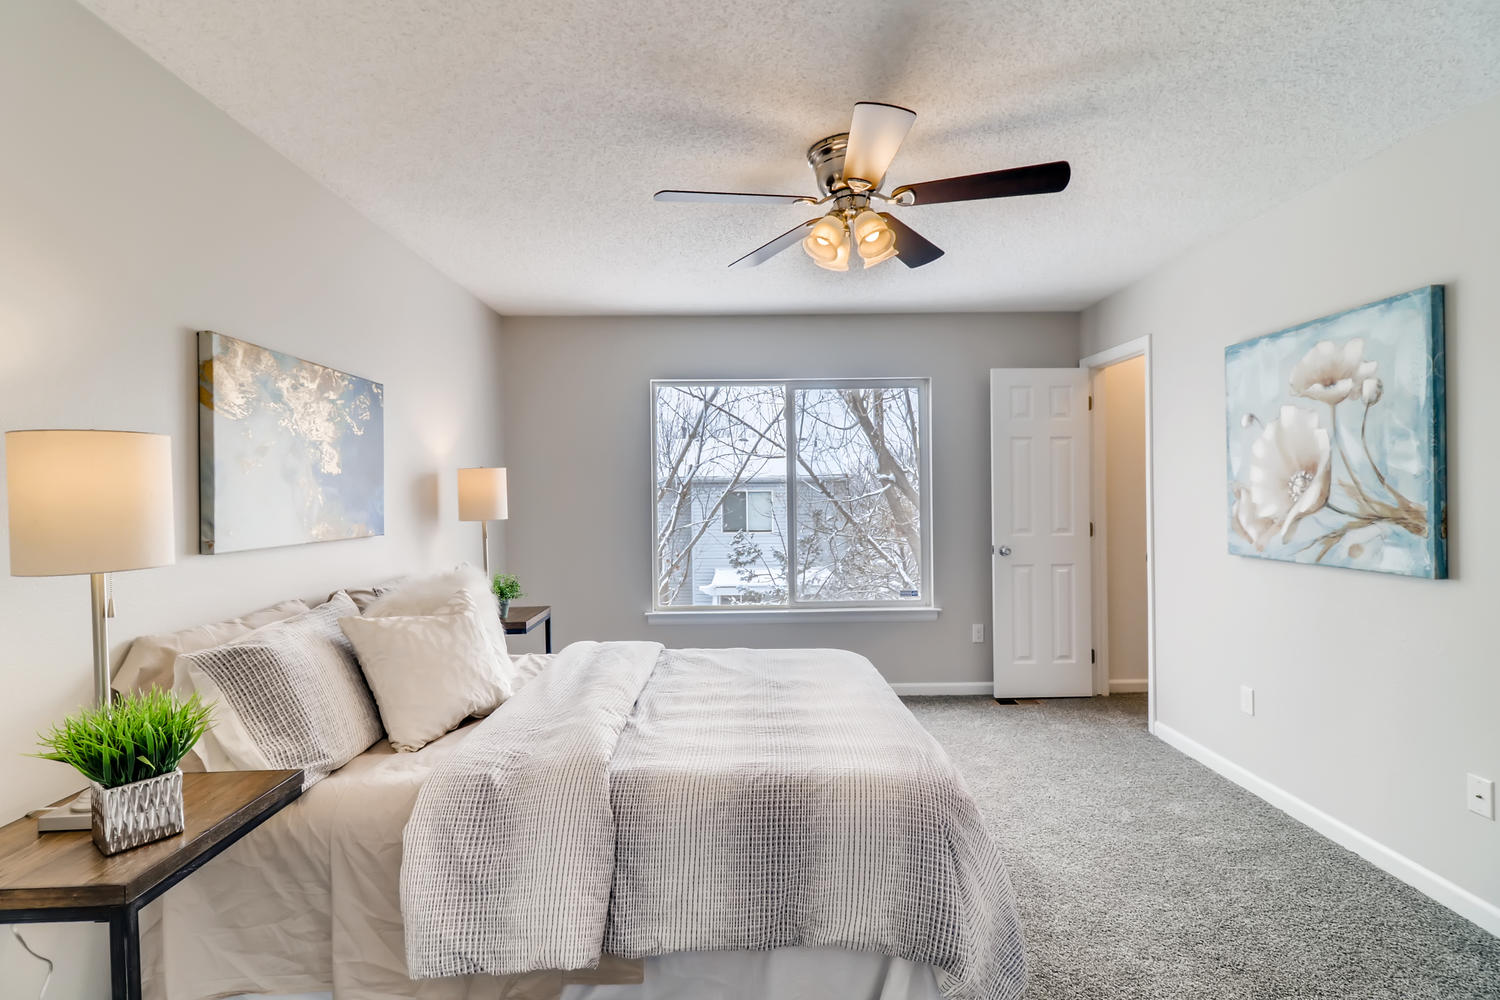 REAL ESTATE LISTING: 1902 Fountain Court Master Bedroom